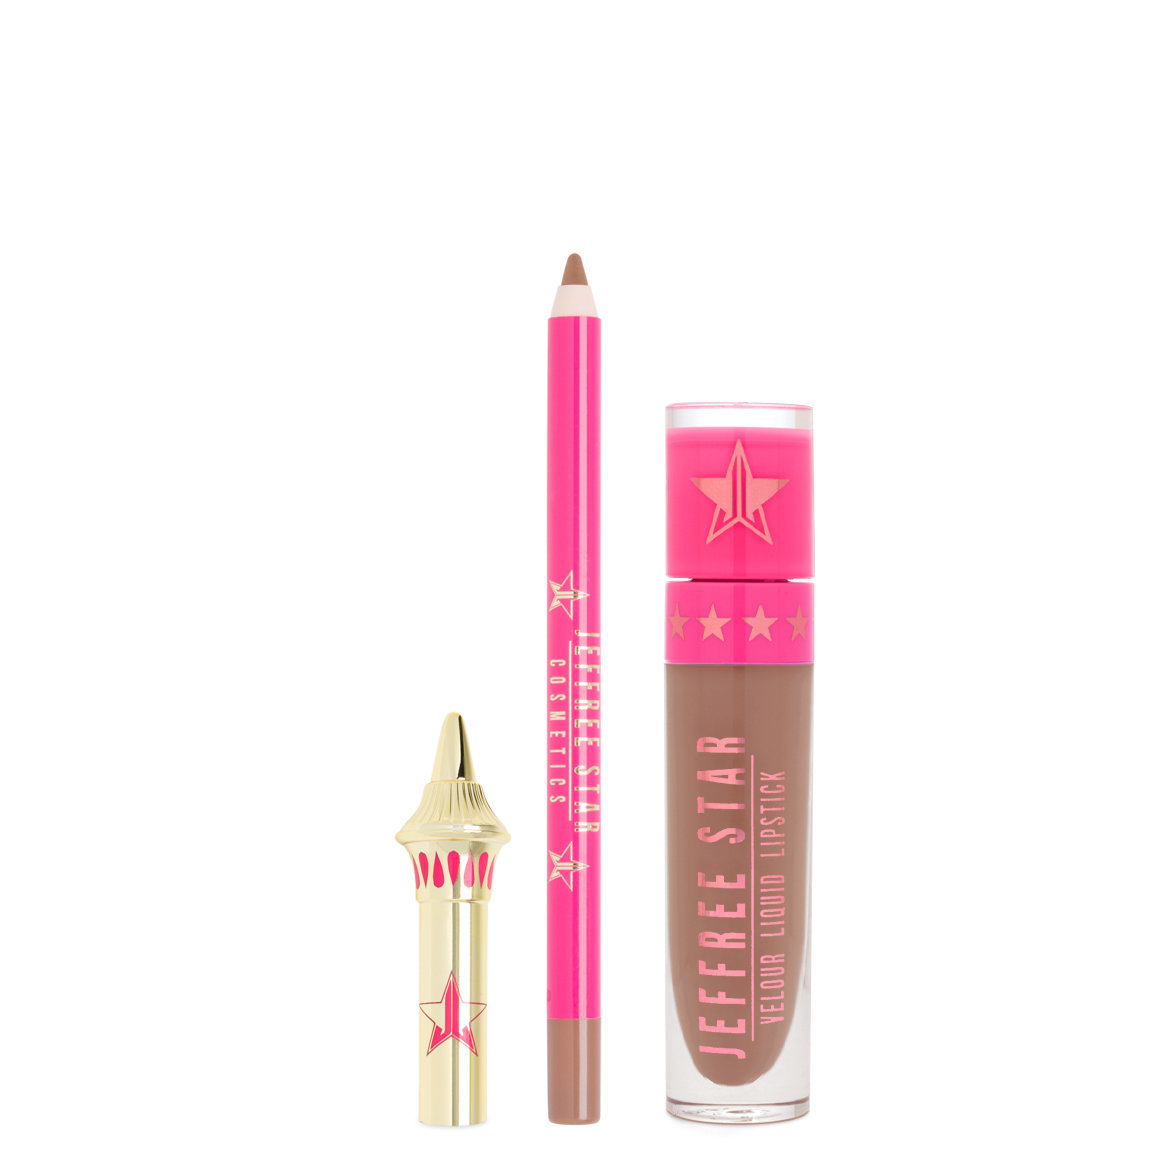 Jeffree Star Cosmetics Velour Lip Kit Posh Spice alternative view 1.